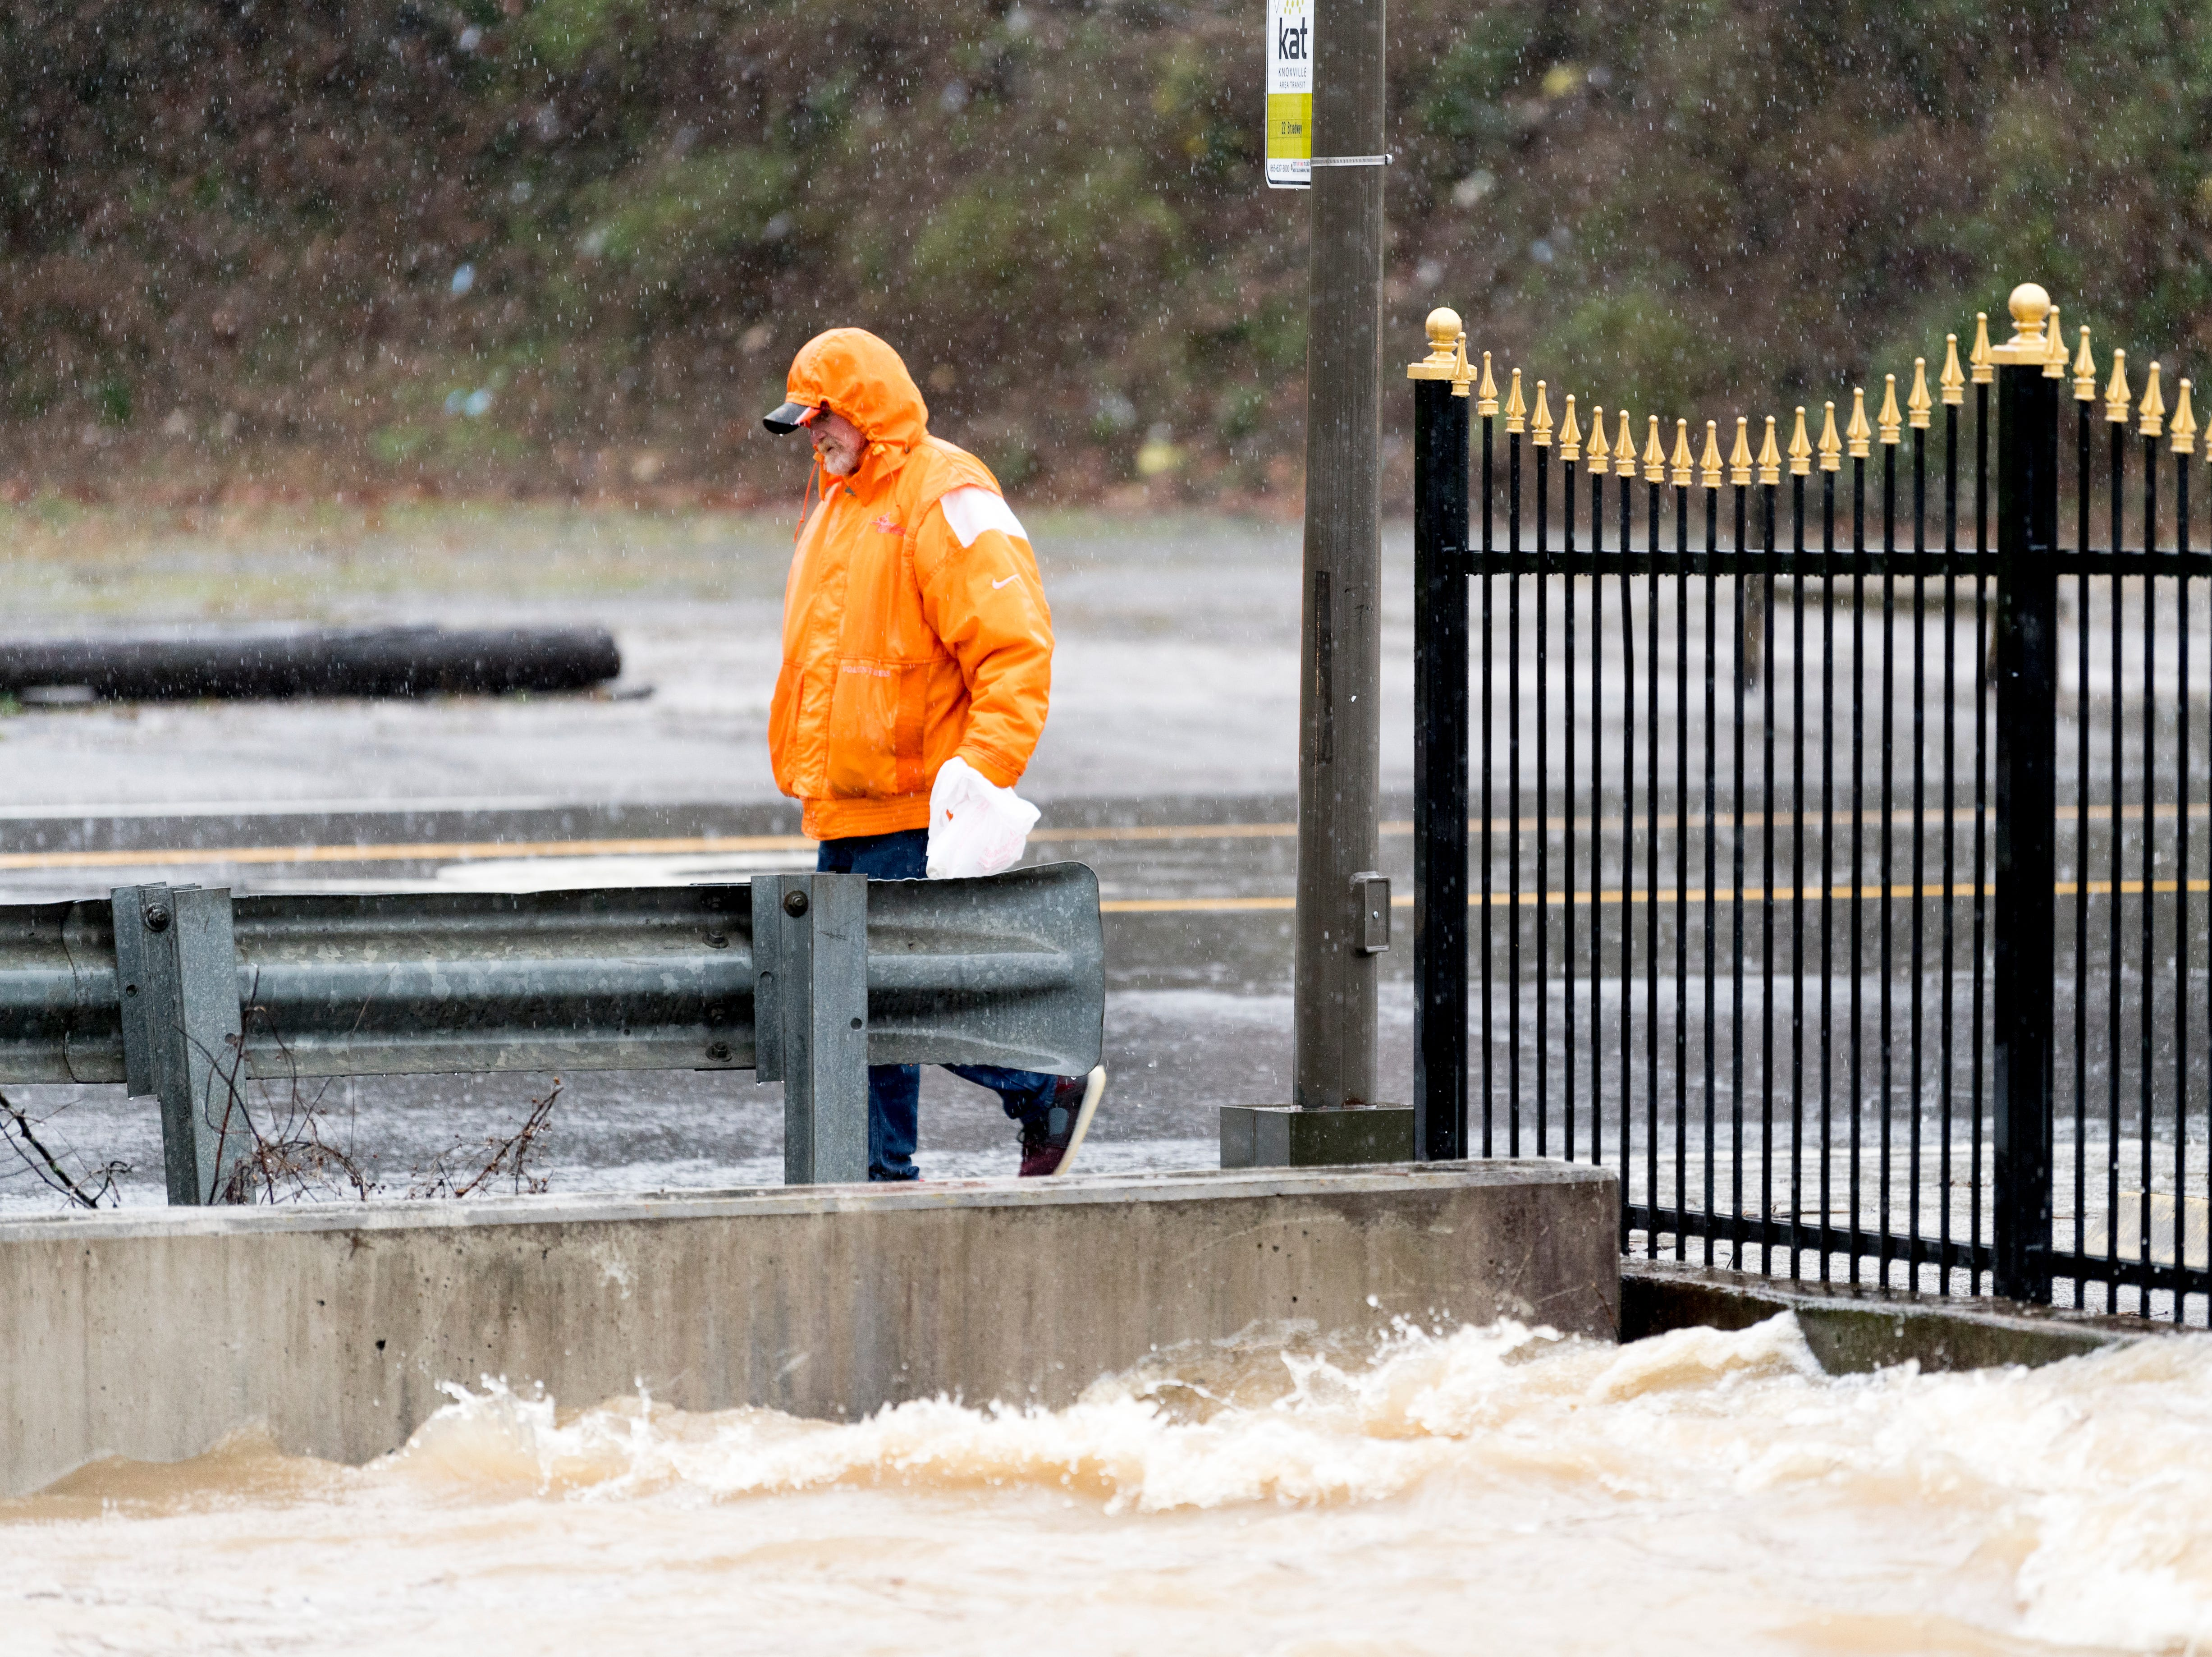 A pedestrian passes by an overflowing First Creek as seen from the Broadway Kroger during a heavy rainstorm in Knoxville, Tennessee on Saturday, February 23, 2019. The Knoxville area could see between 2 and 3 inches through the weekend.